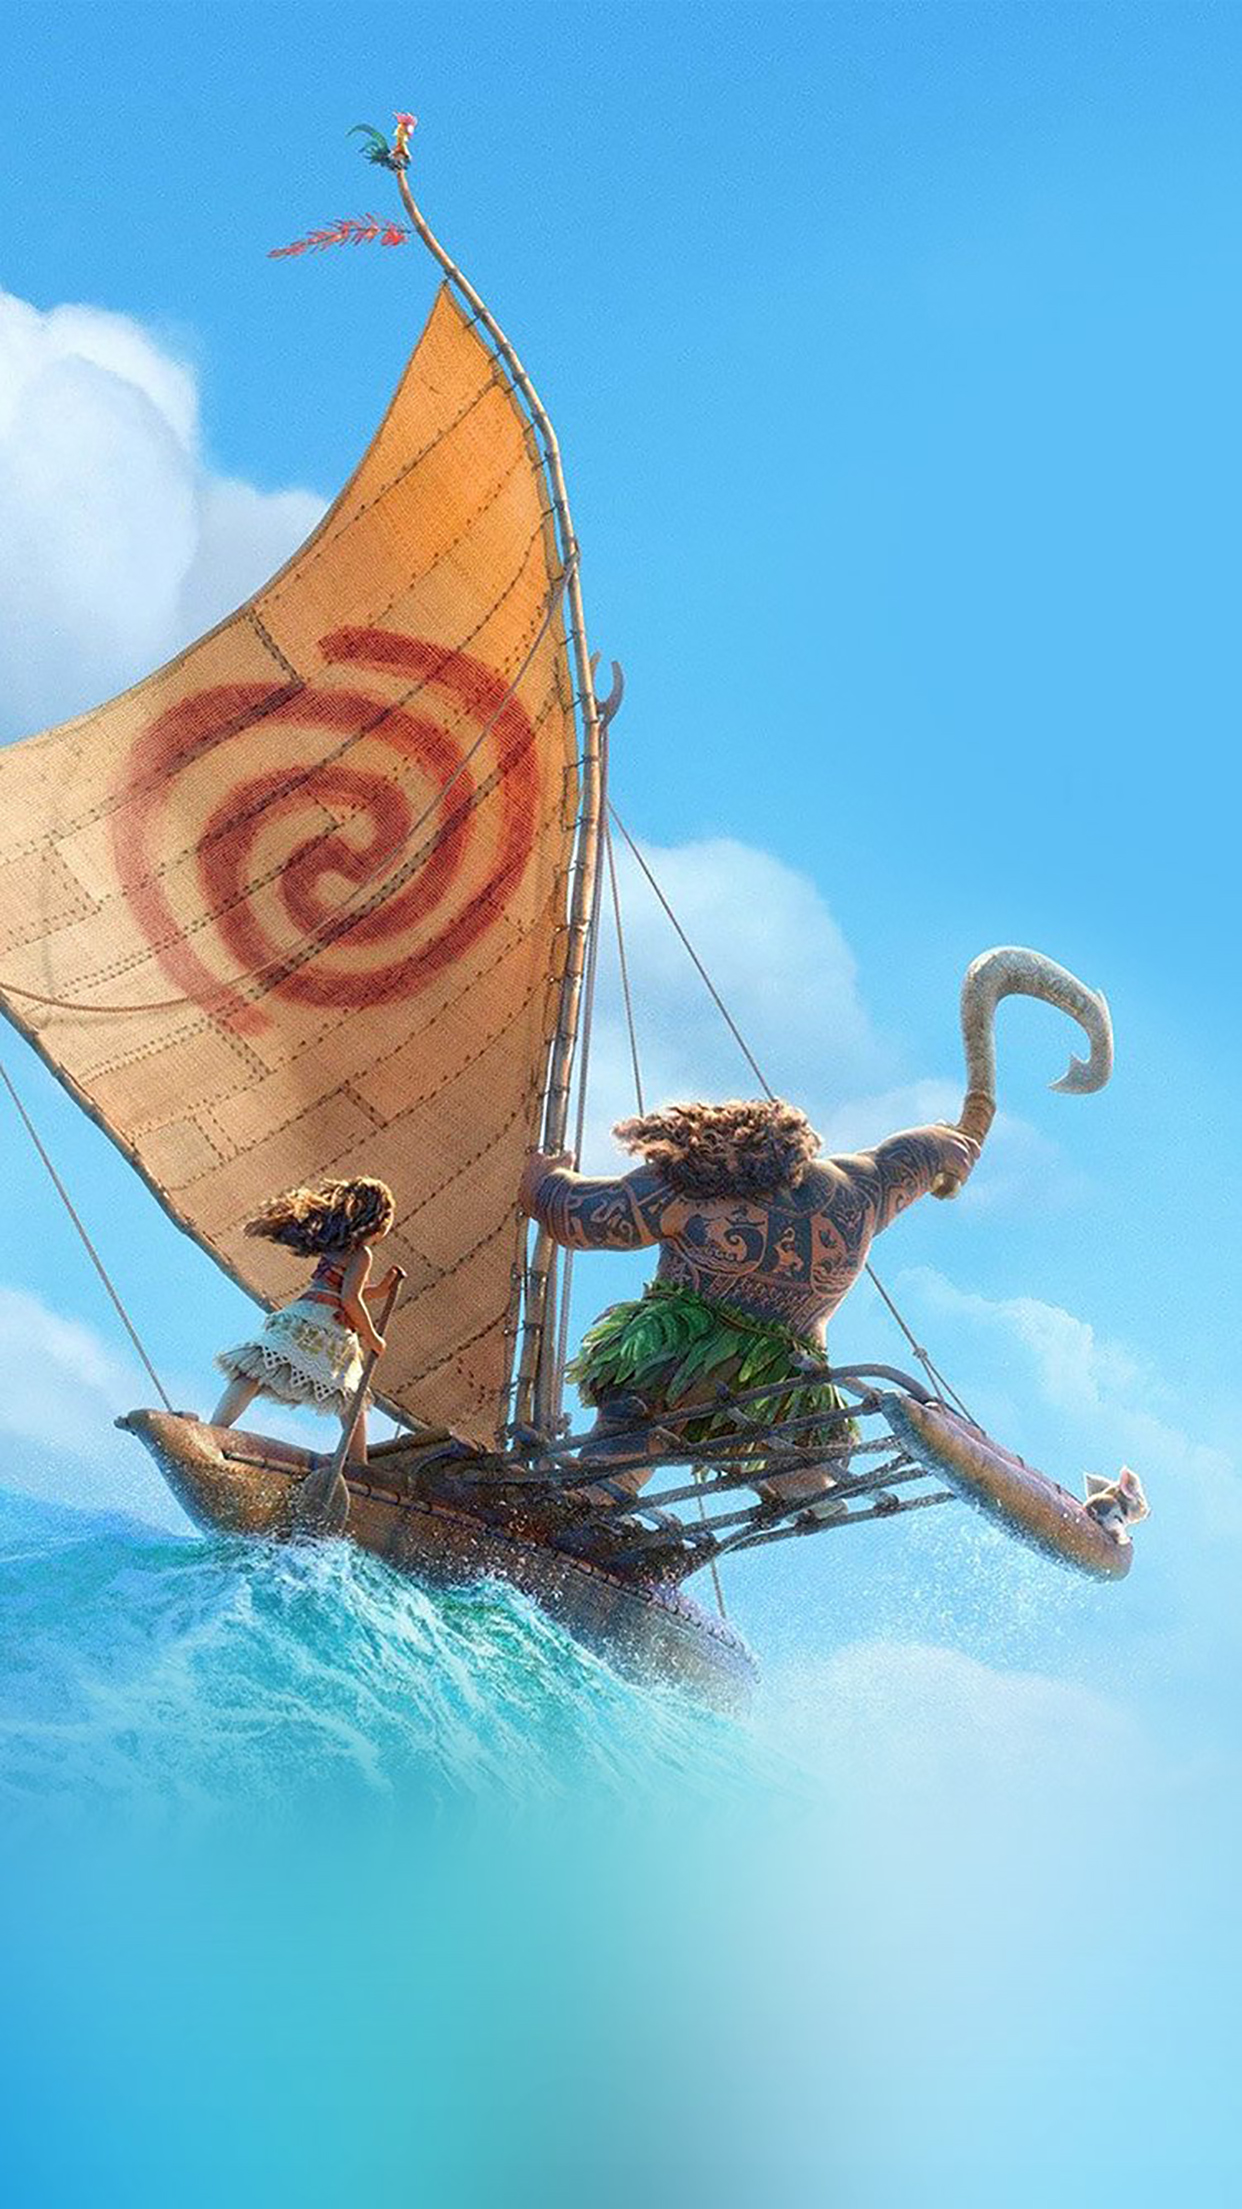 Moana 1 3Wallpapers iPhone Parallax Moana : 1